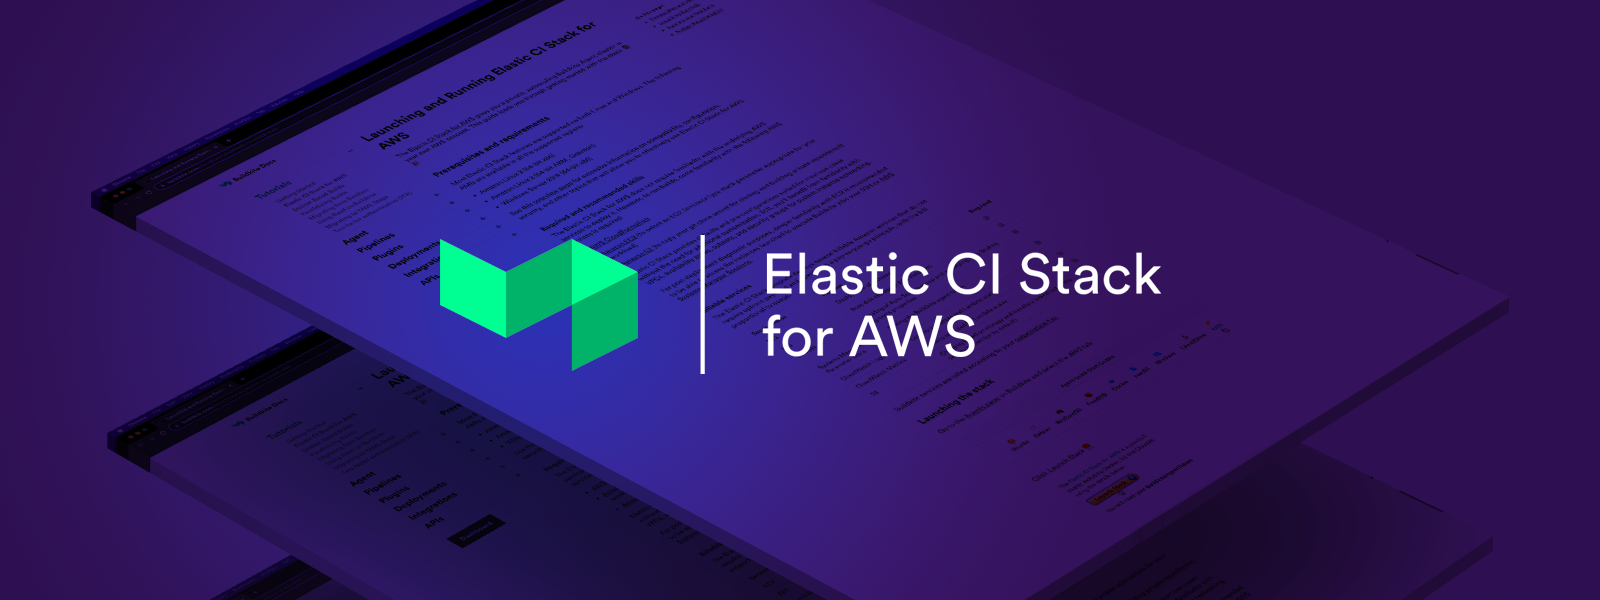 Elastic CI Stack for AWS